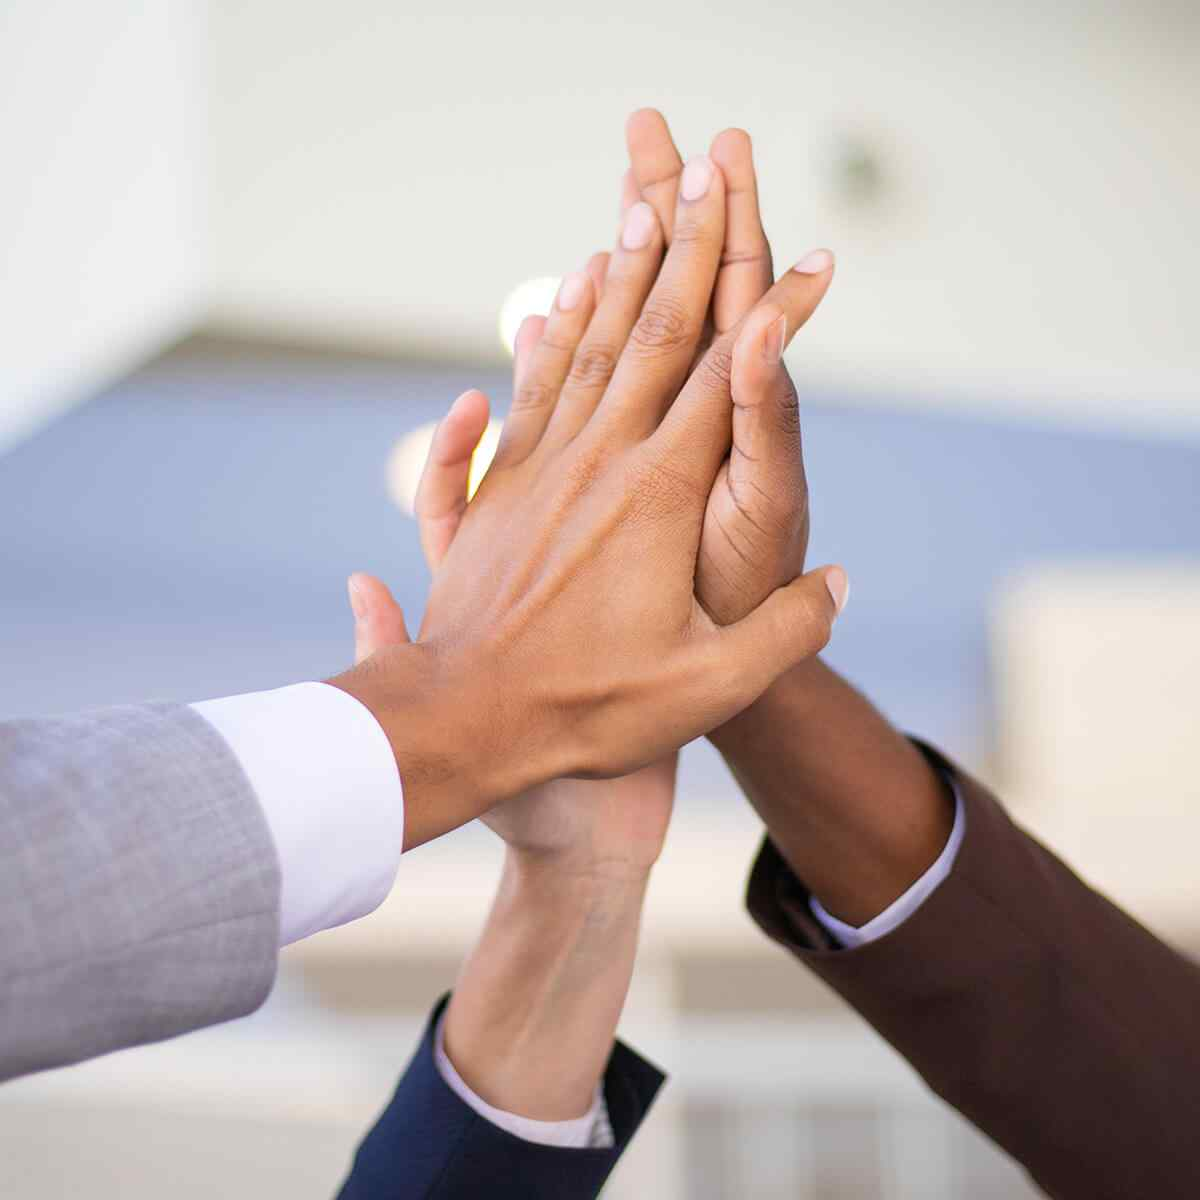 Business colleagues celebrating success and joining hands. Multiethnic group of man and women giving high five to each other. Achievement concept